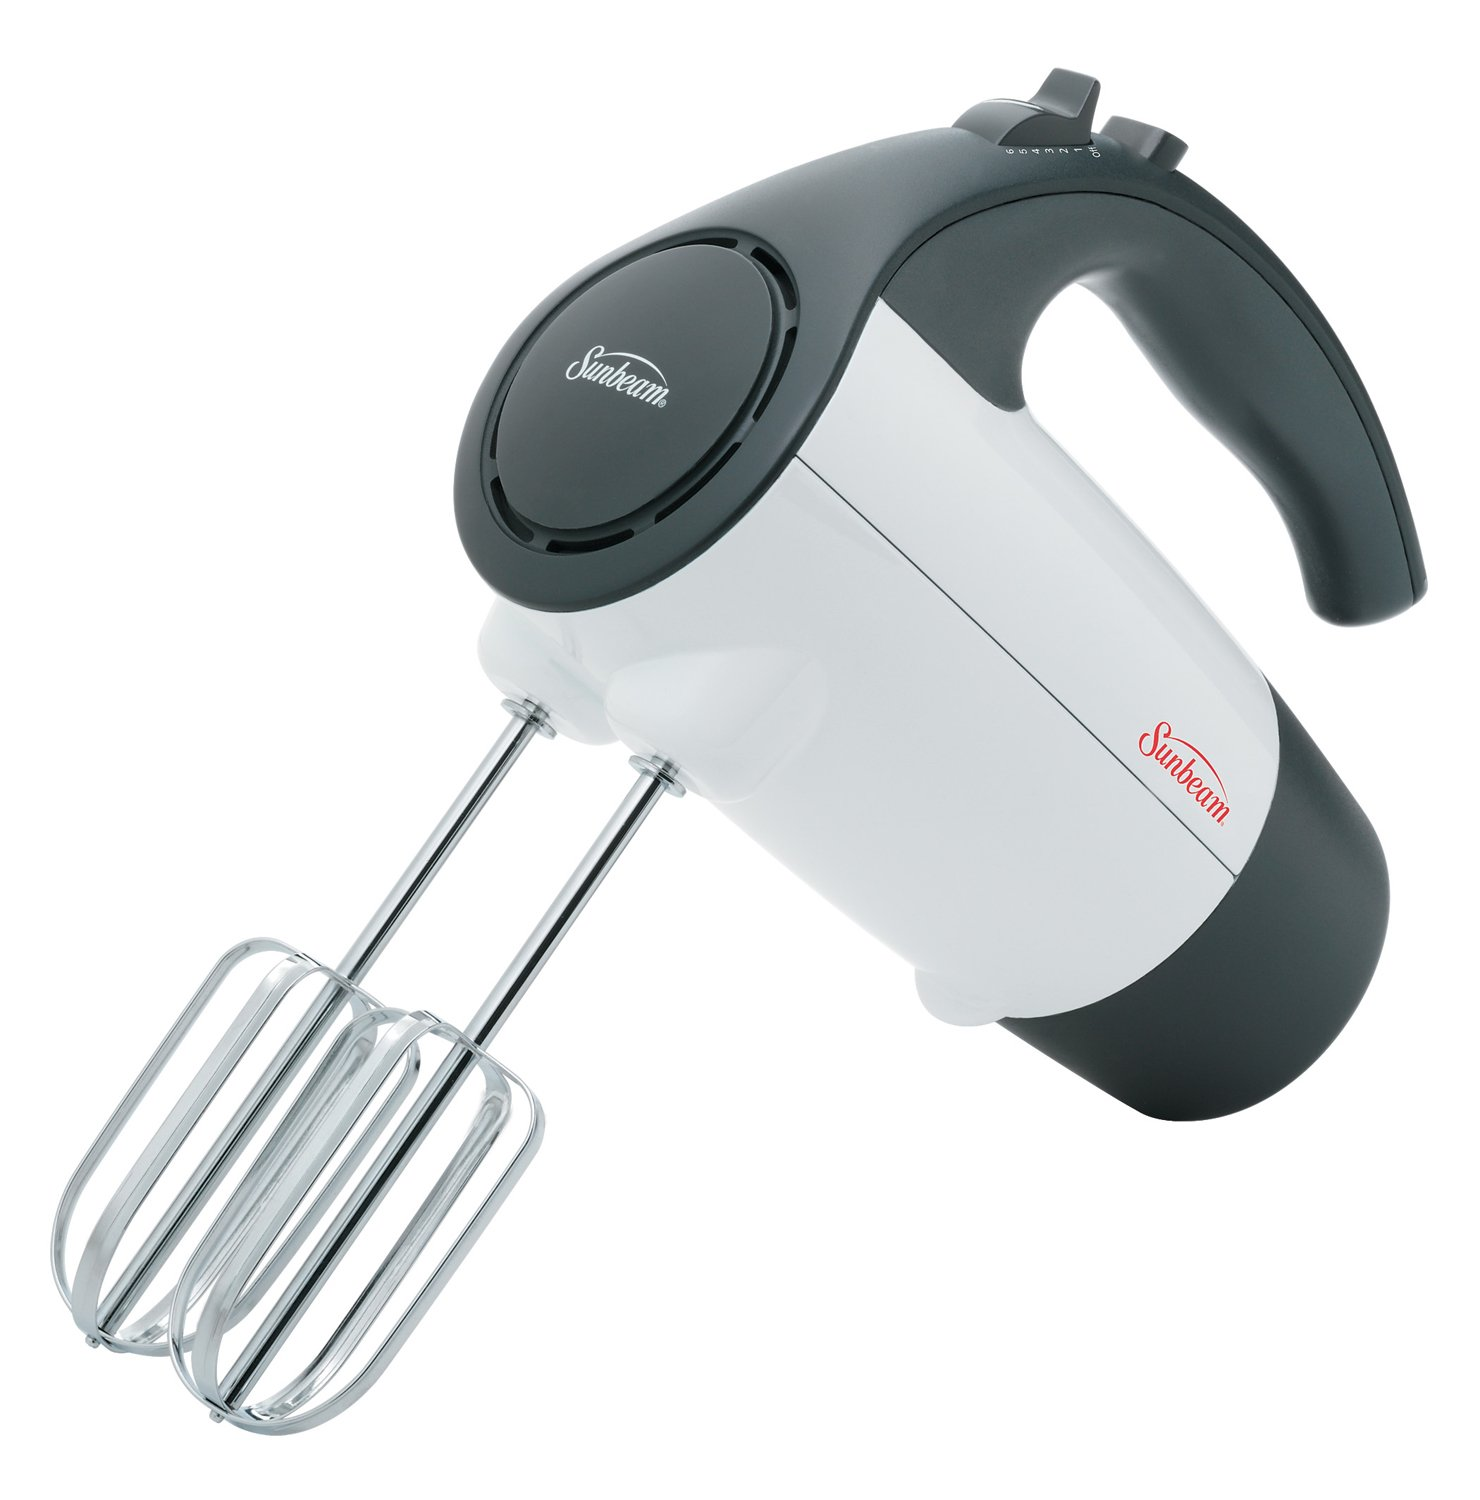 Sunbeam 6-Speed 200 Watt Hand Mixer, White 2524-33